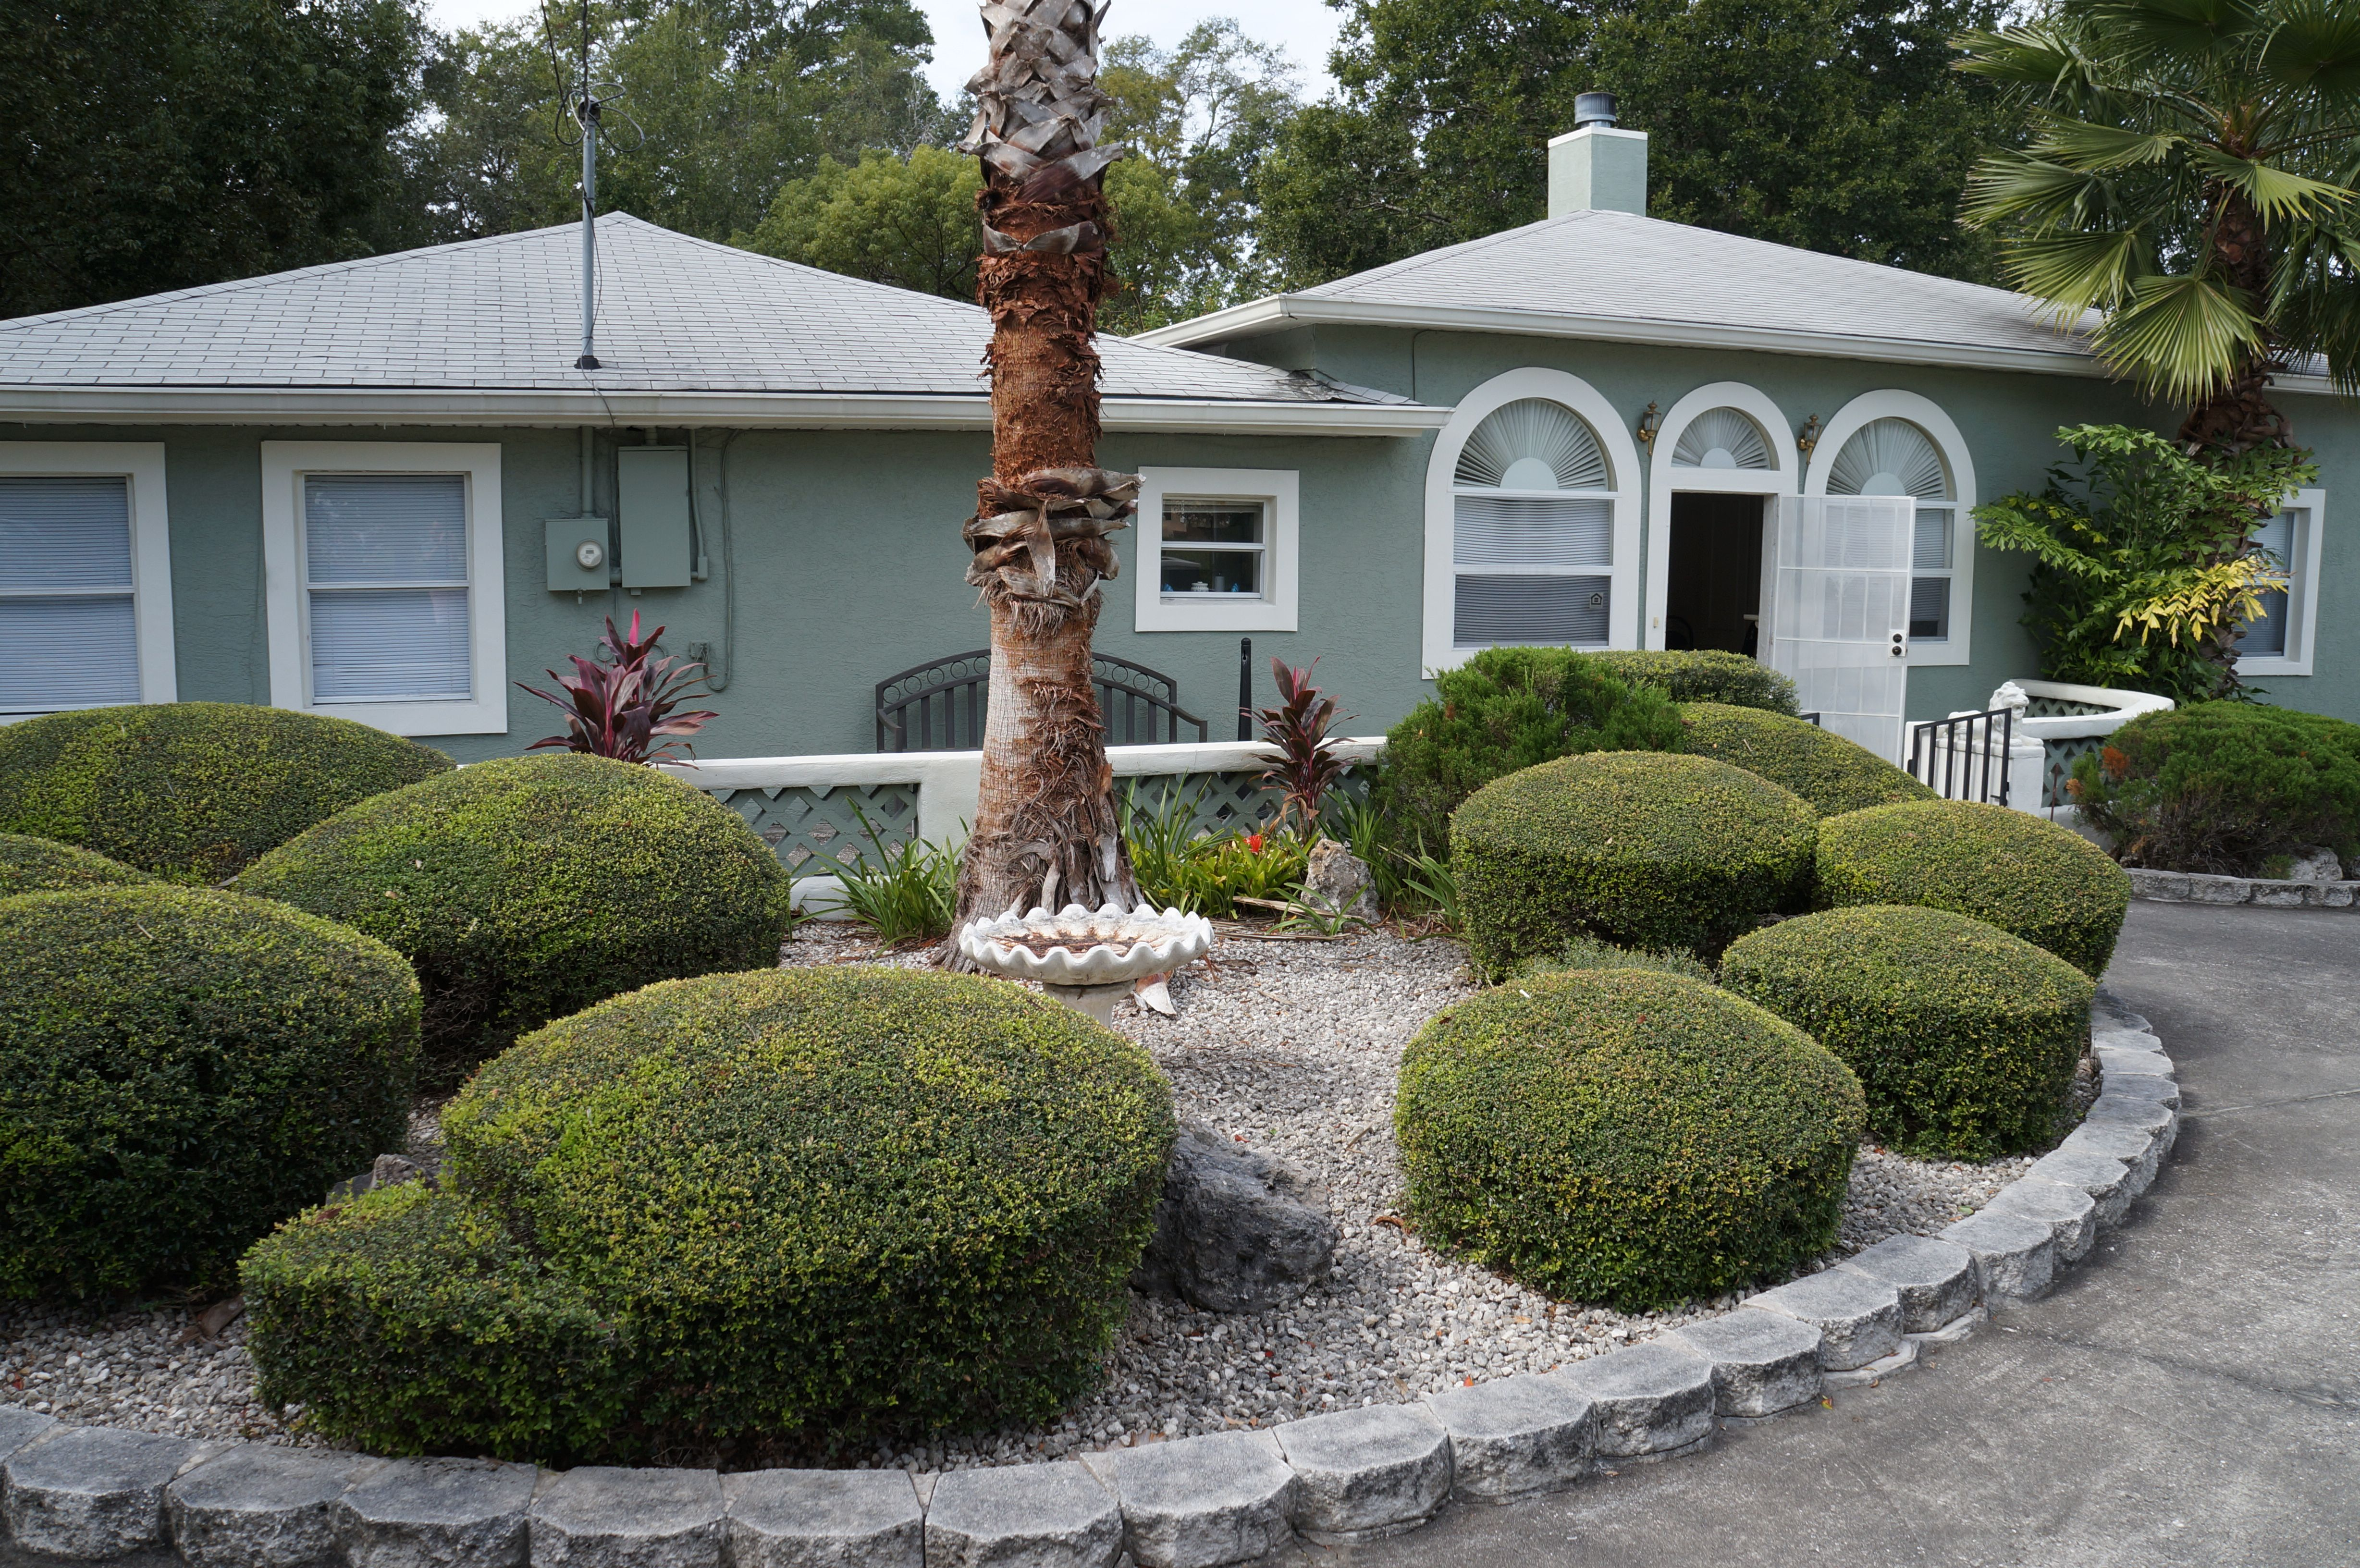 In 2008 the first Dave's House opened in Orlando, housing